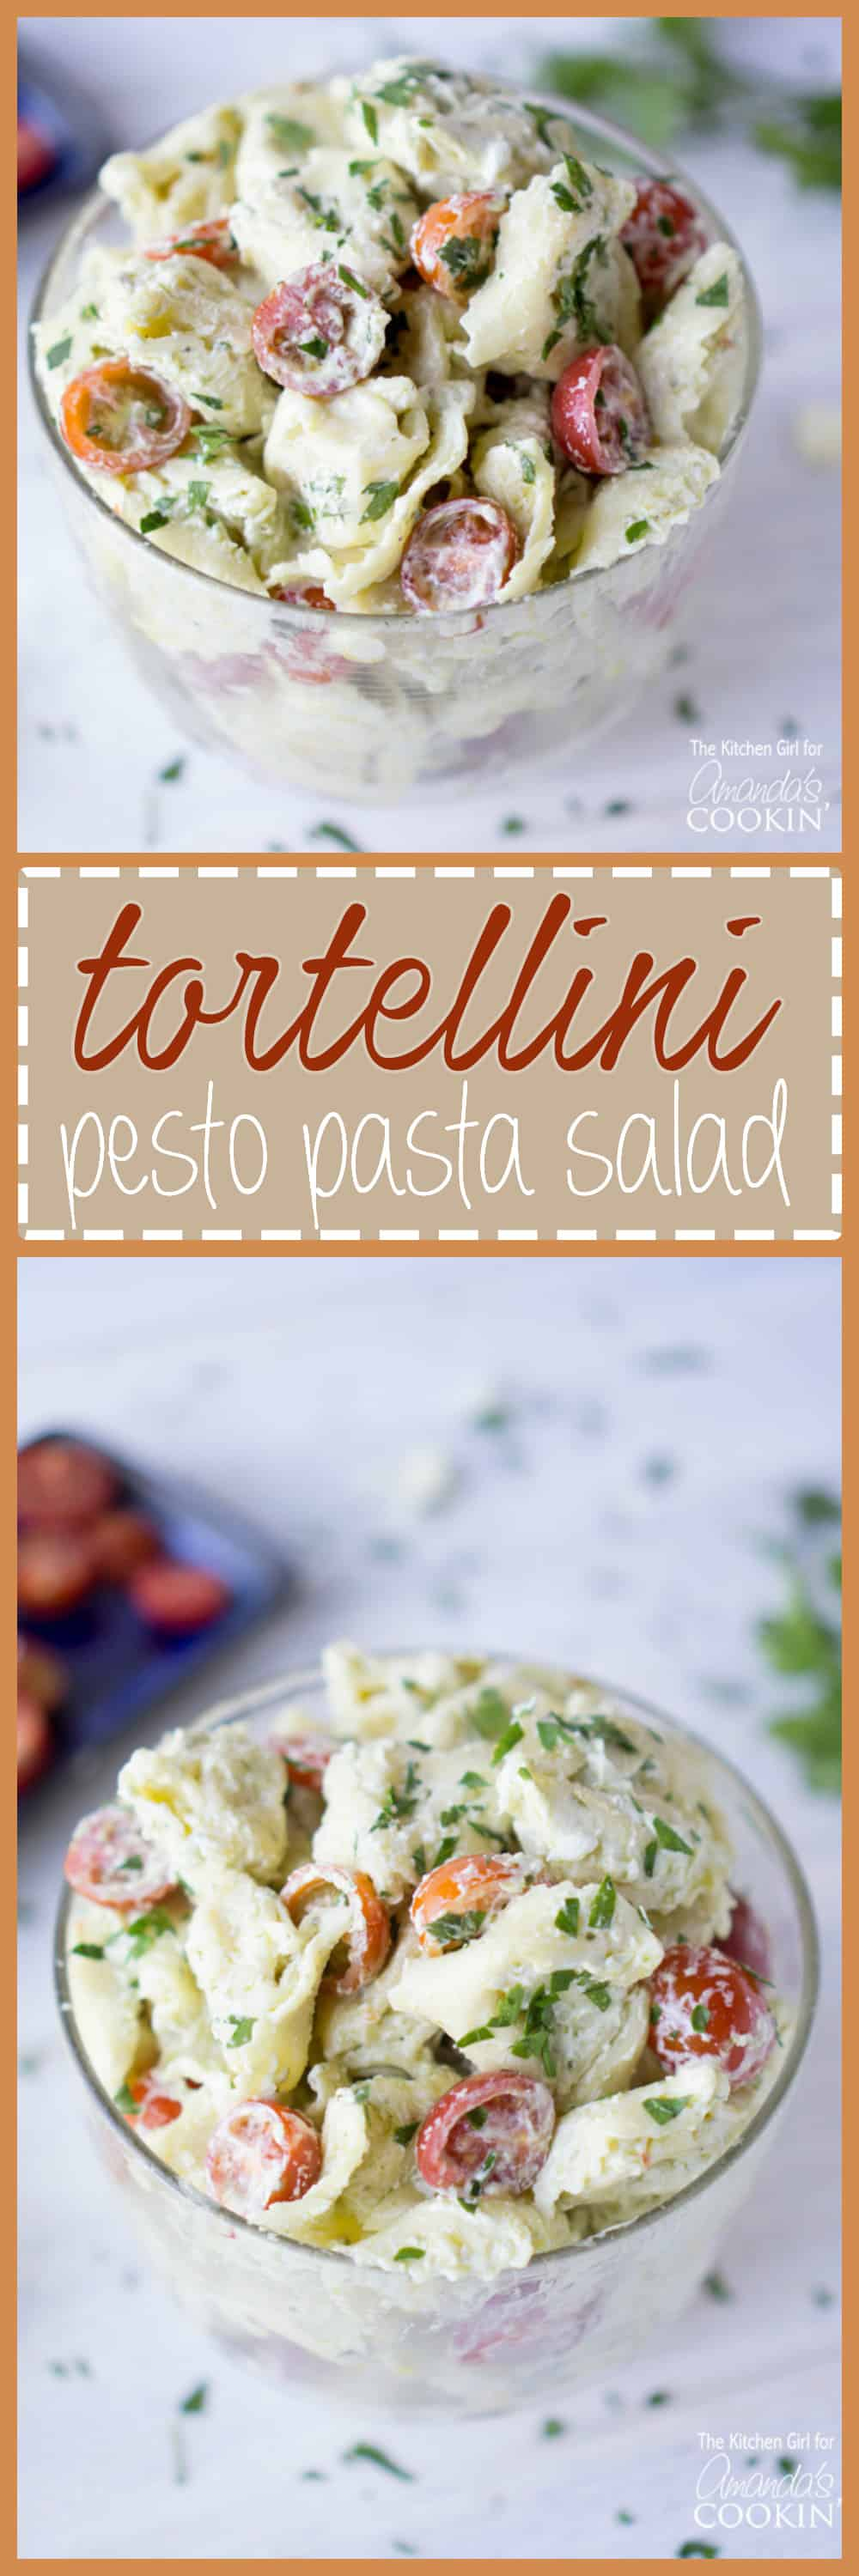 This Tortellini Pesto Pasta Salad is your ticket to another creamy, dreamy, summer pasta salad recipe. It comes together in just 20 minutes!